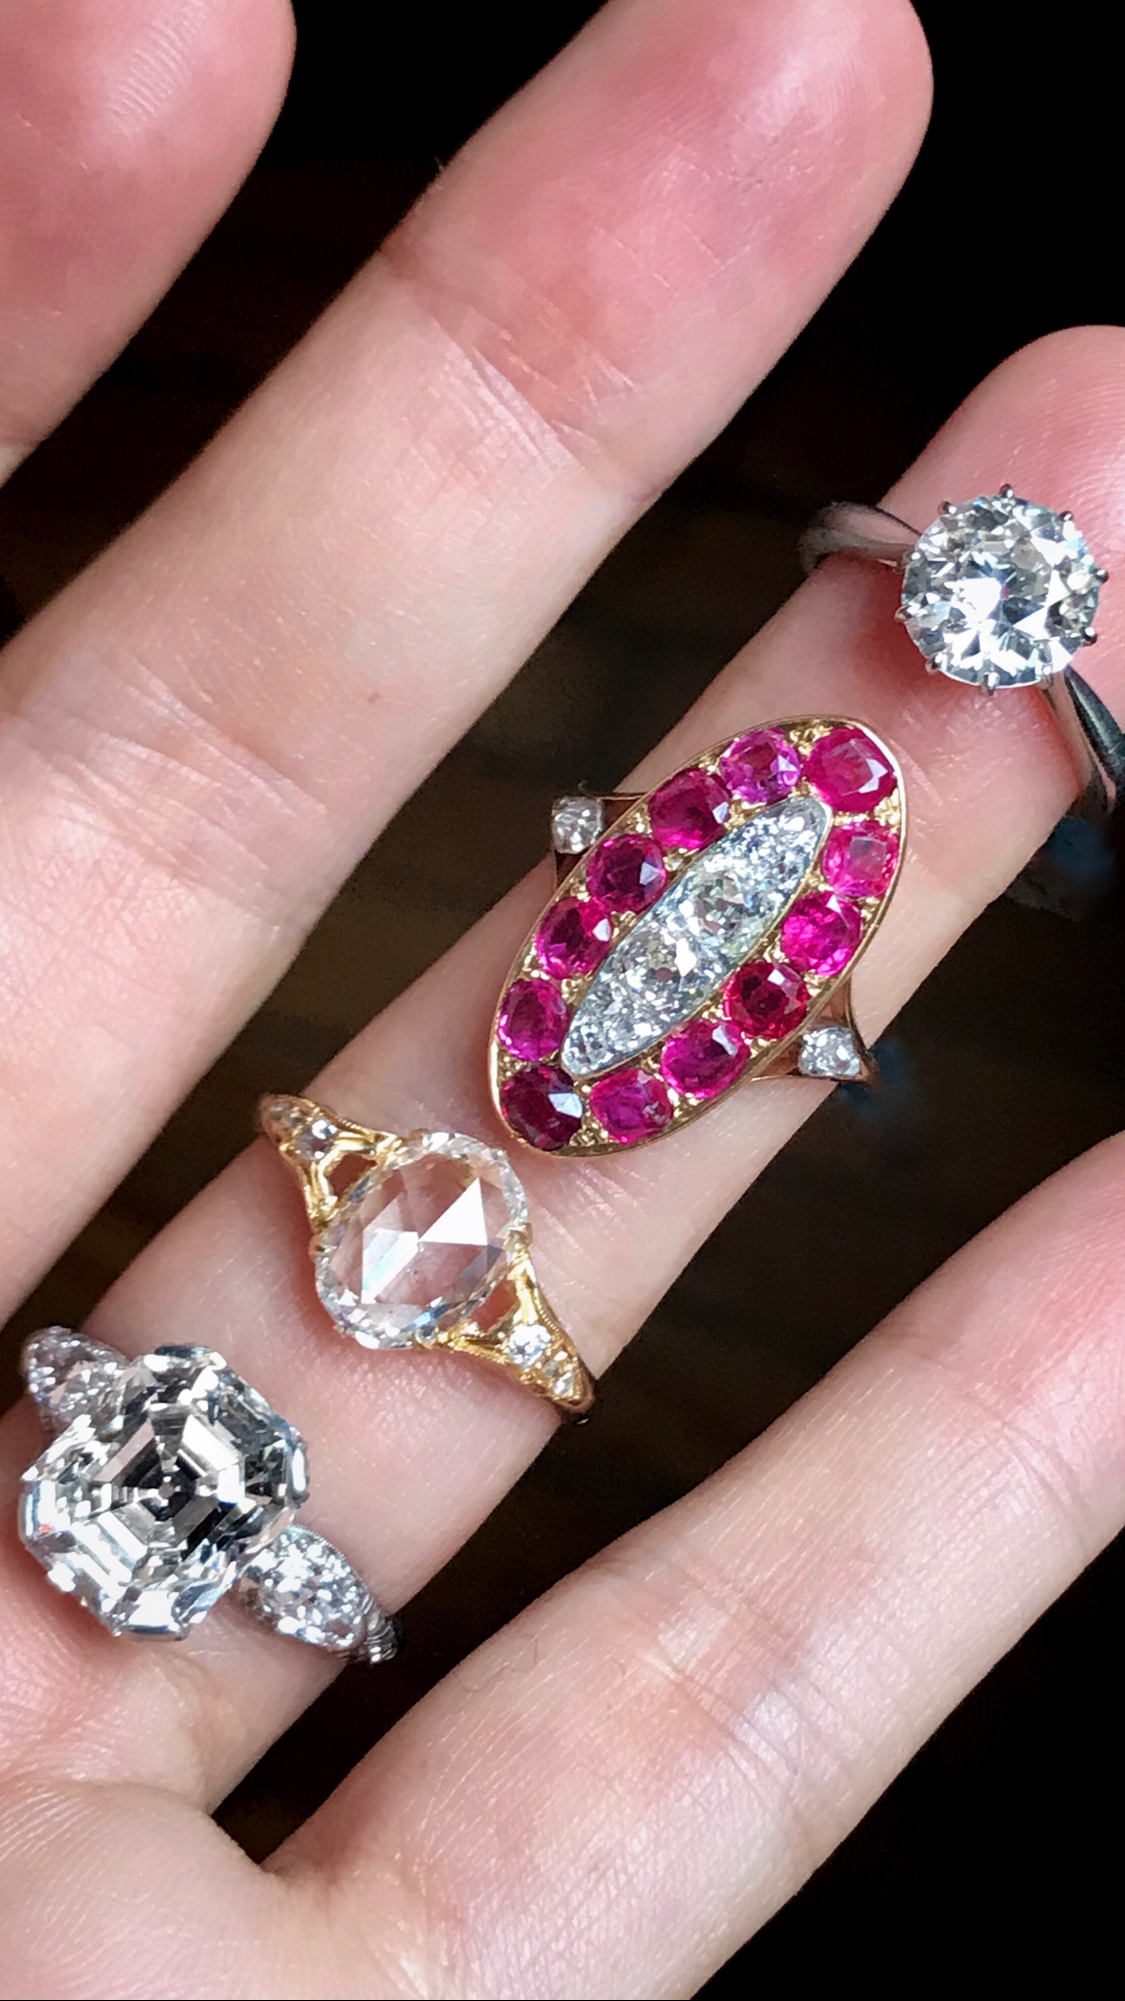 Shop vintage rings from the Victorian, Edwardian, and Art Deco eras ...